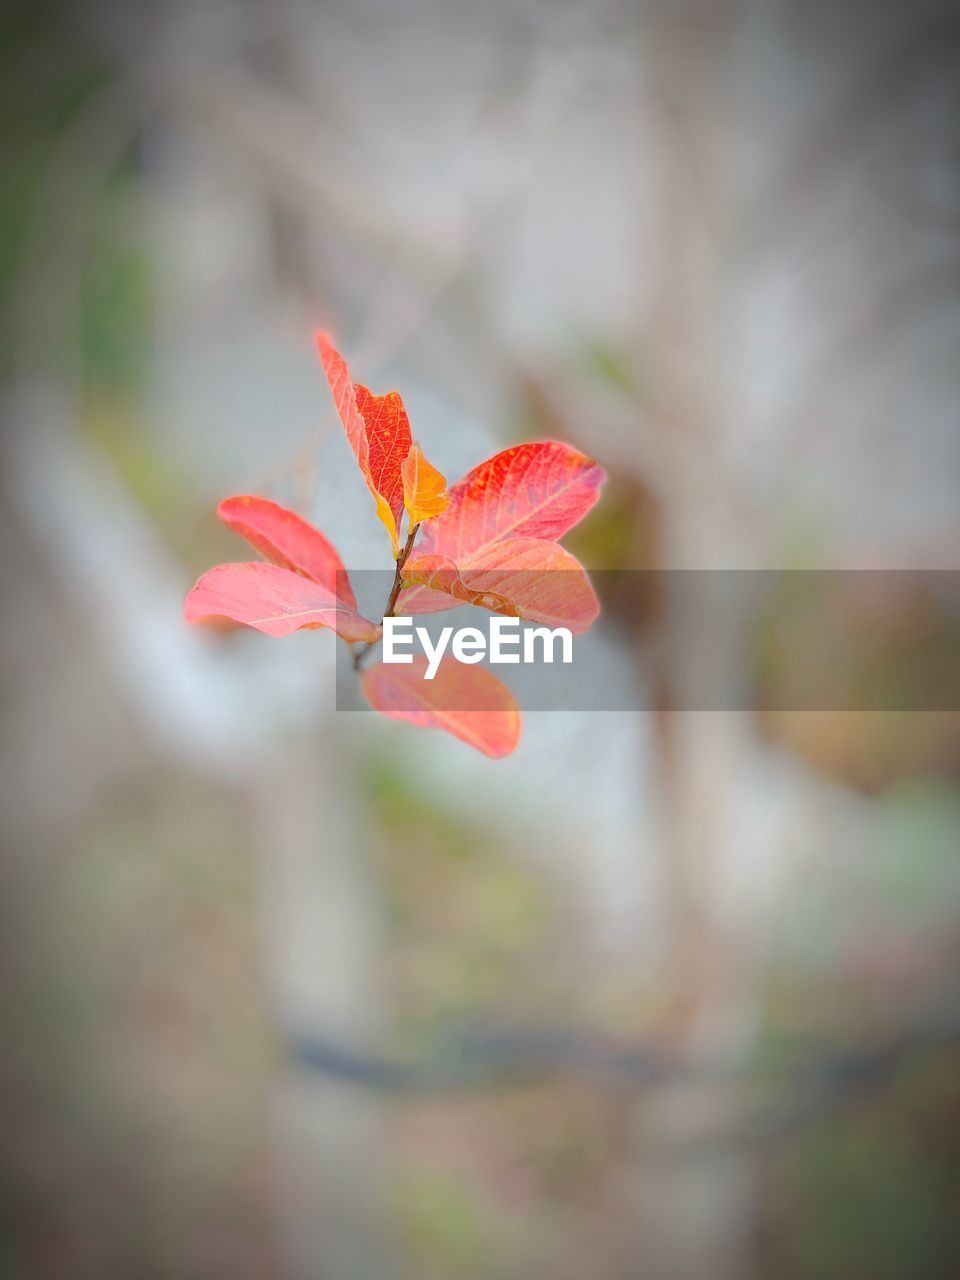 plant, flower, flowering plant, beauty in nature, close-up, growth, fragility, vulnerability, freshness, petal, focus on foreground, flower head, day, inflorescence, no people, nature, selective focus, red, leaf, plant part, outdoors